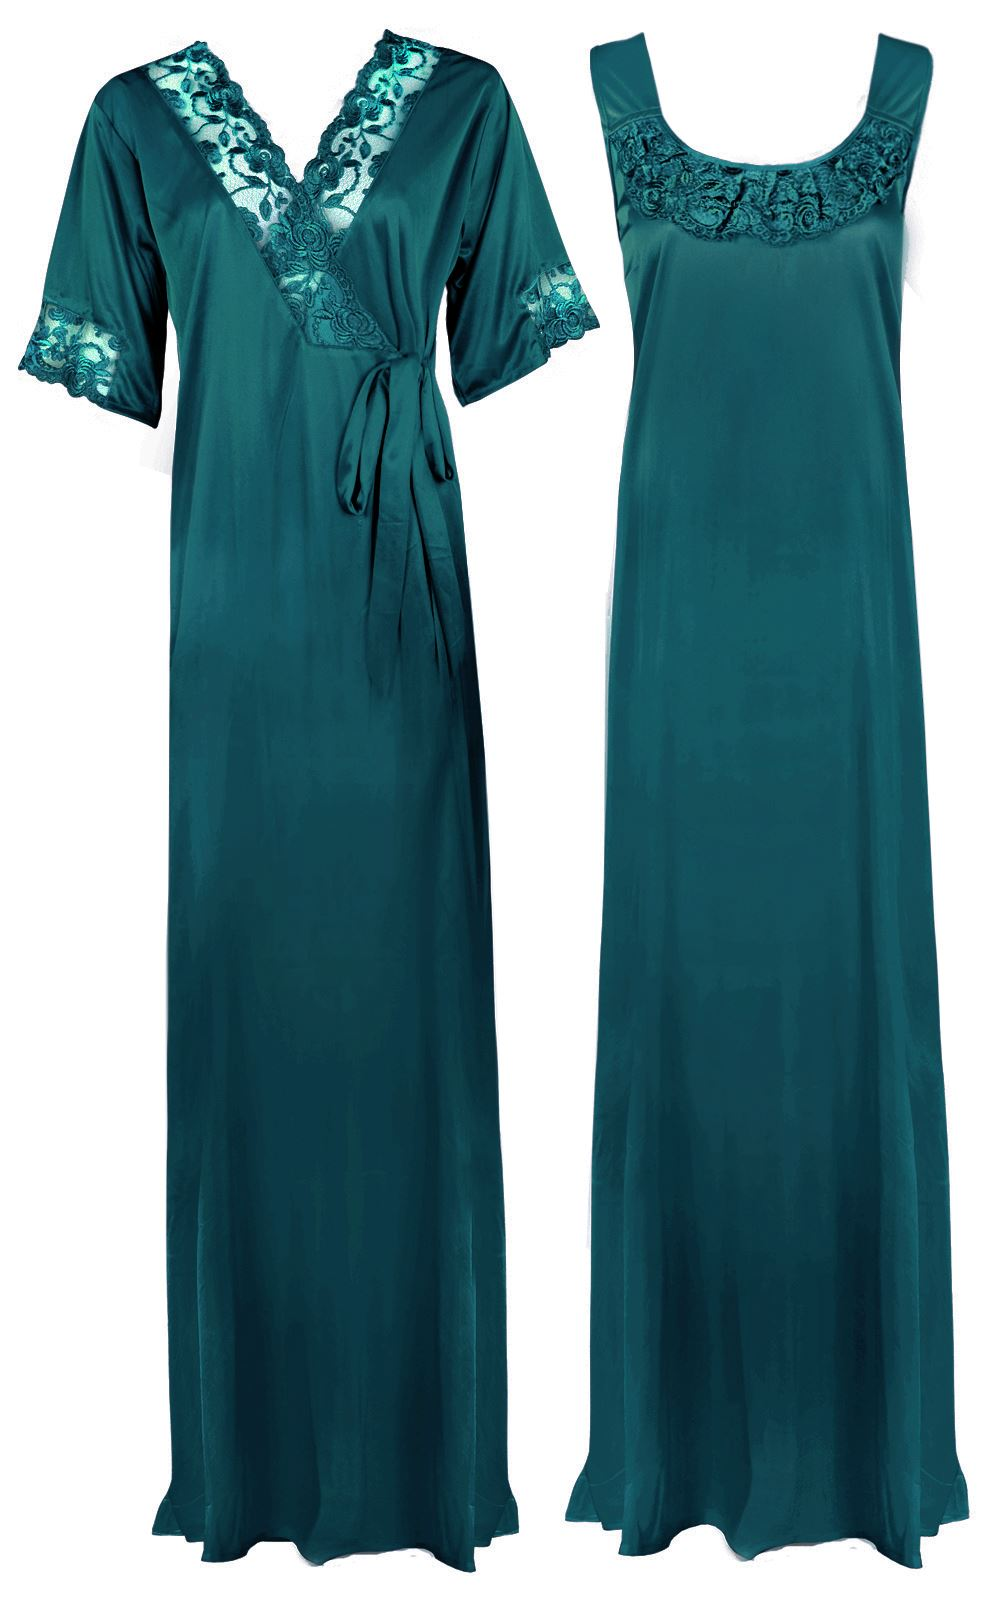 Satin Plus Size 2pc Set Robe & Nighty - Hautie Nightfashion